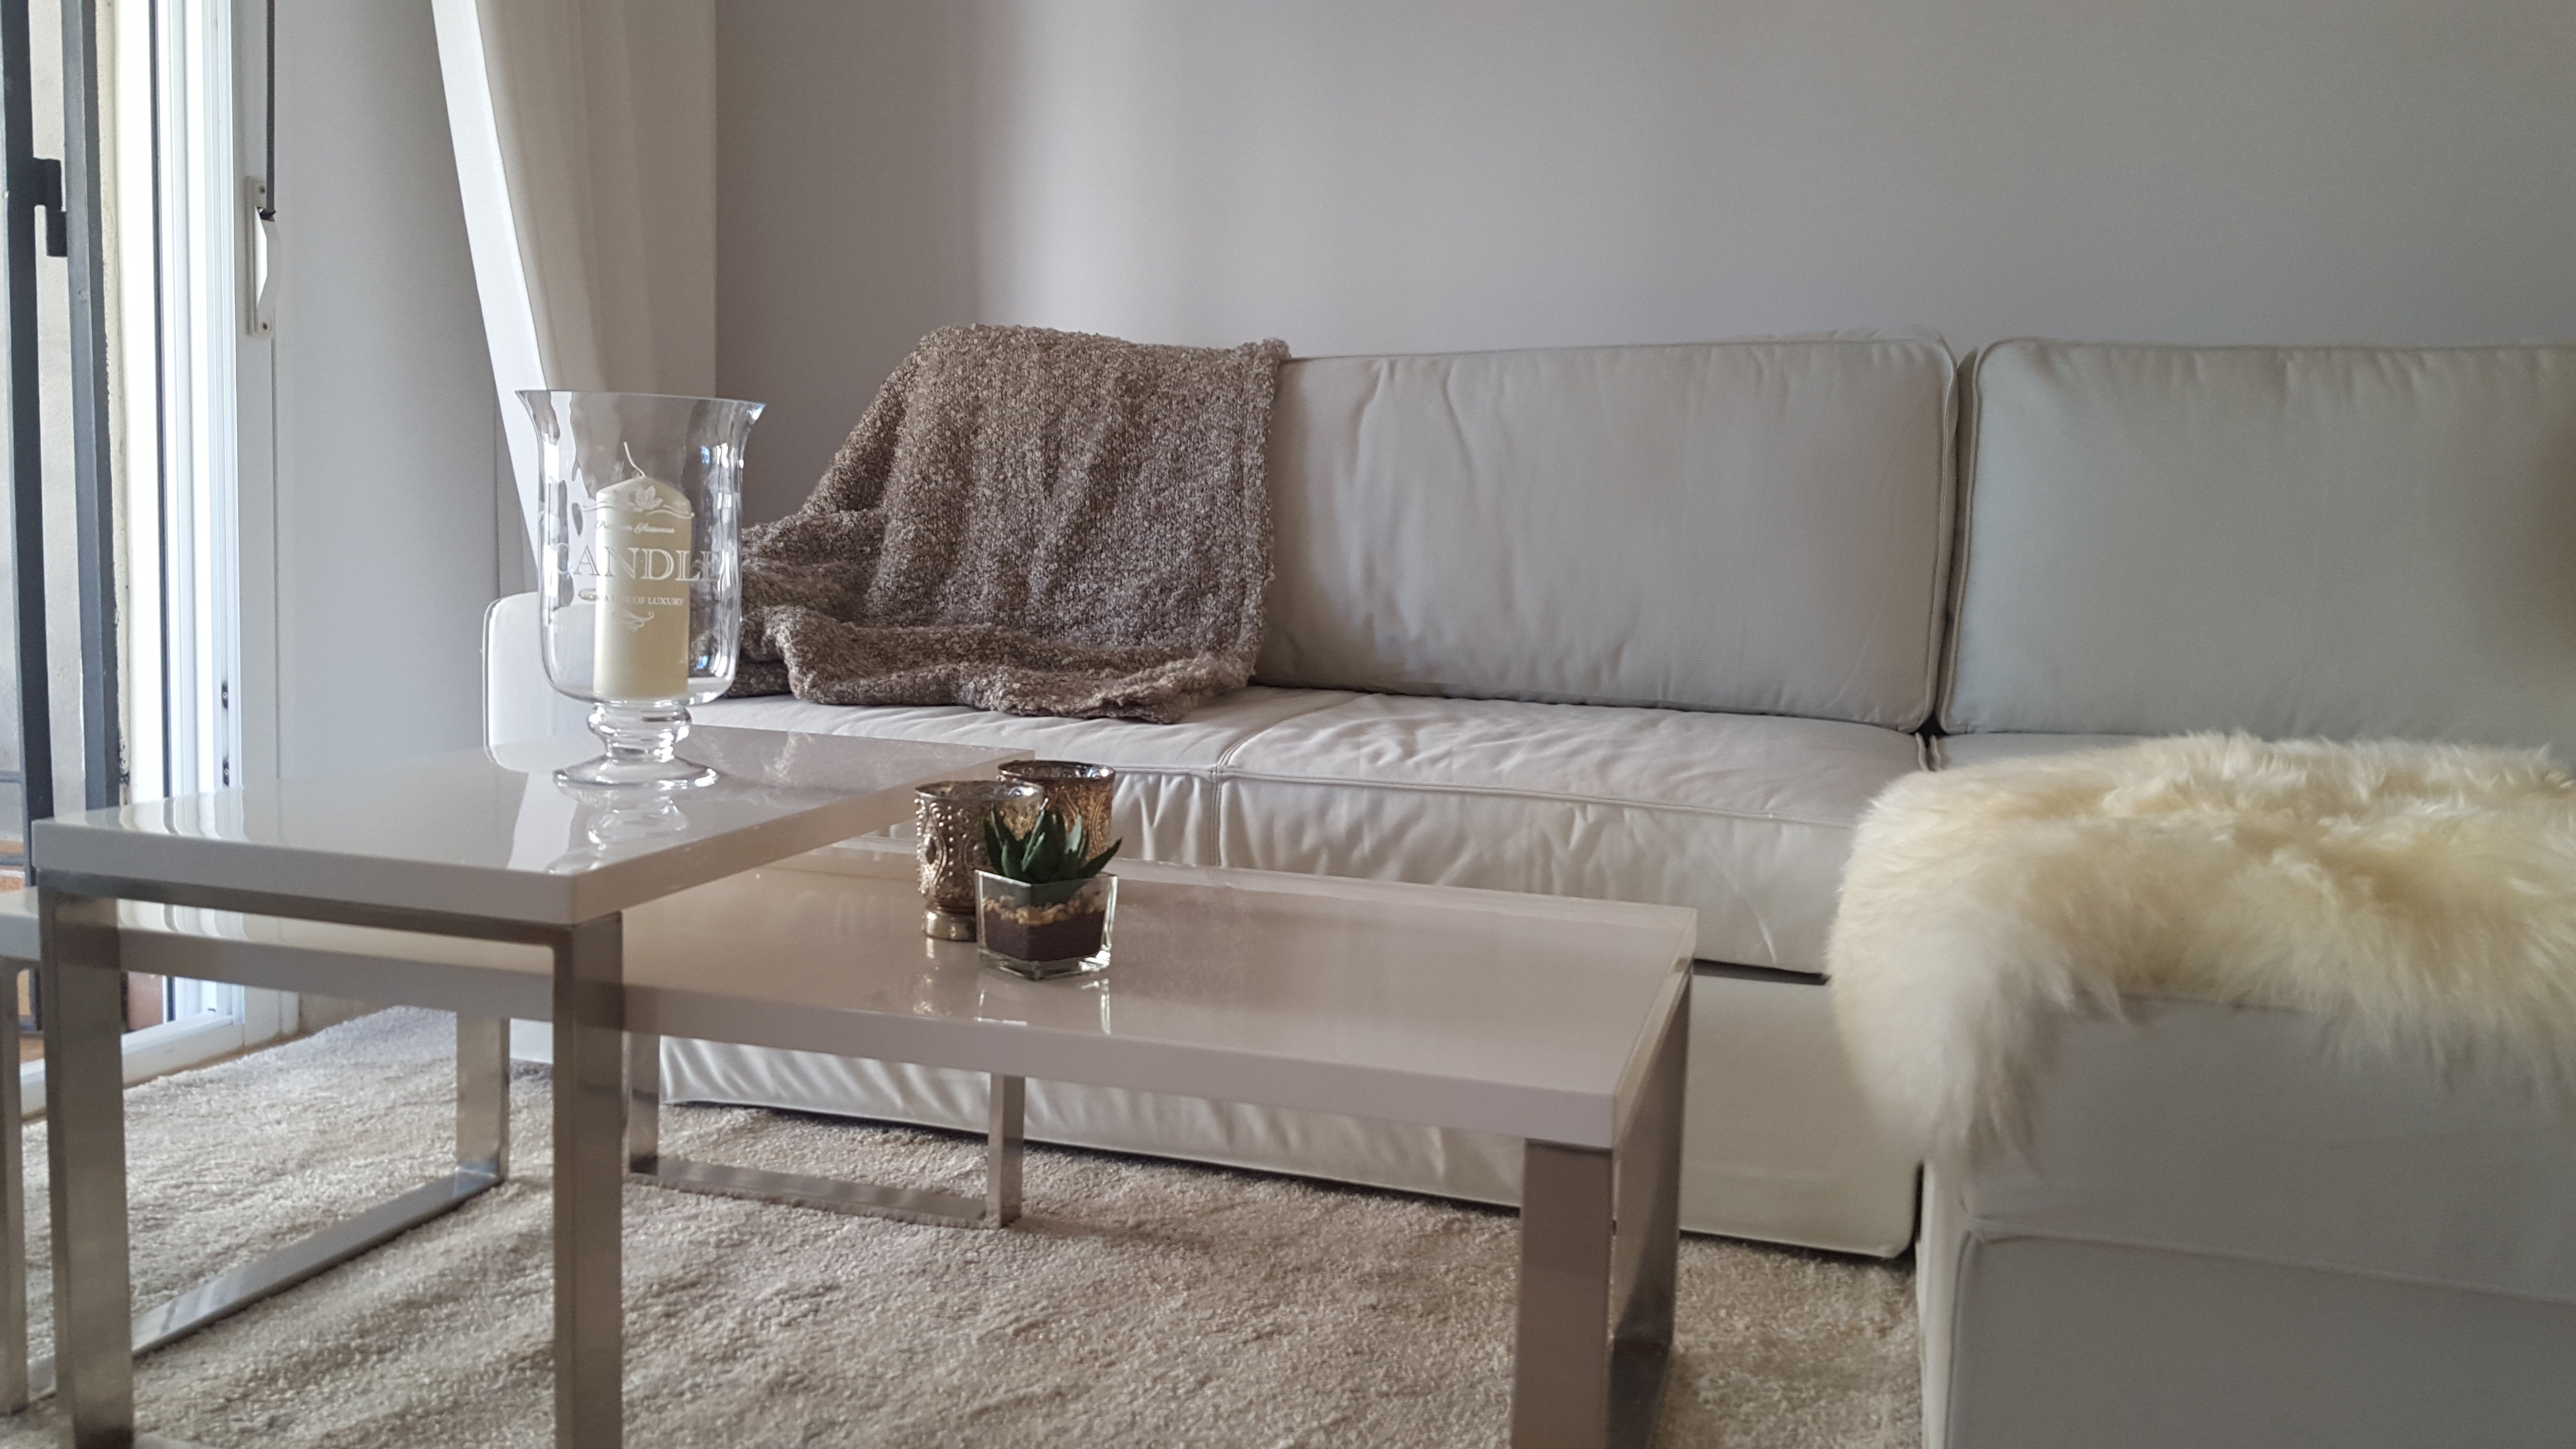 6+2-bed apartment with pool and 60 sqm terrace in Fase I